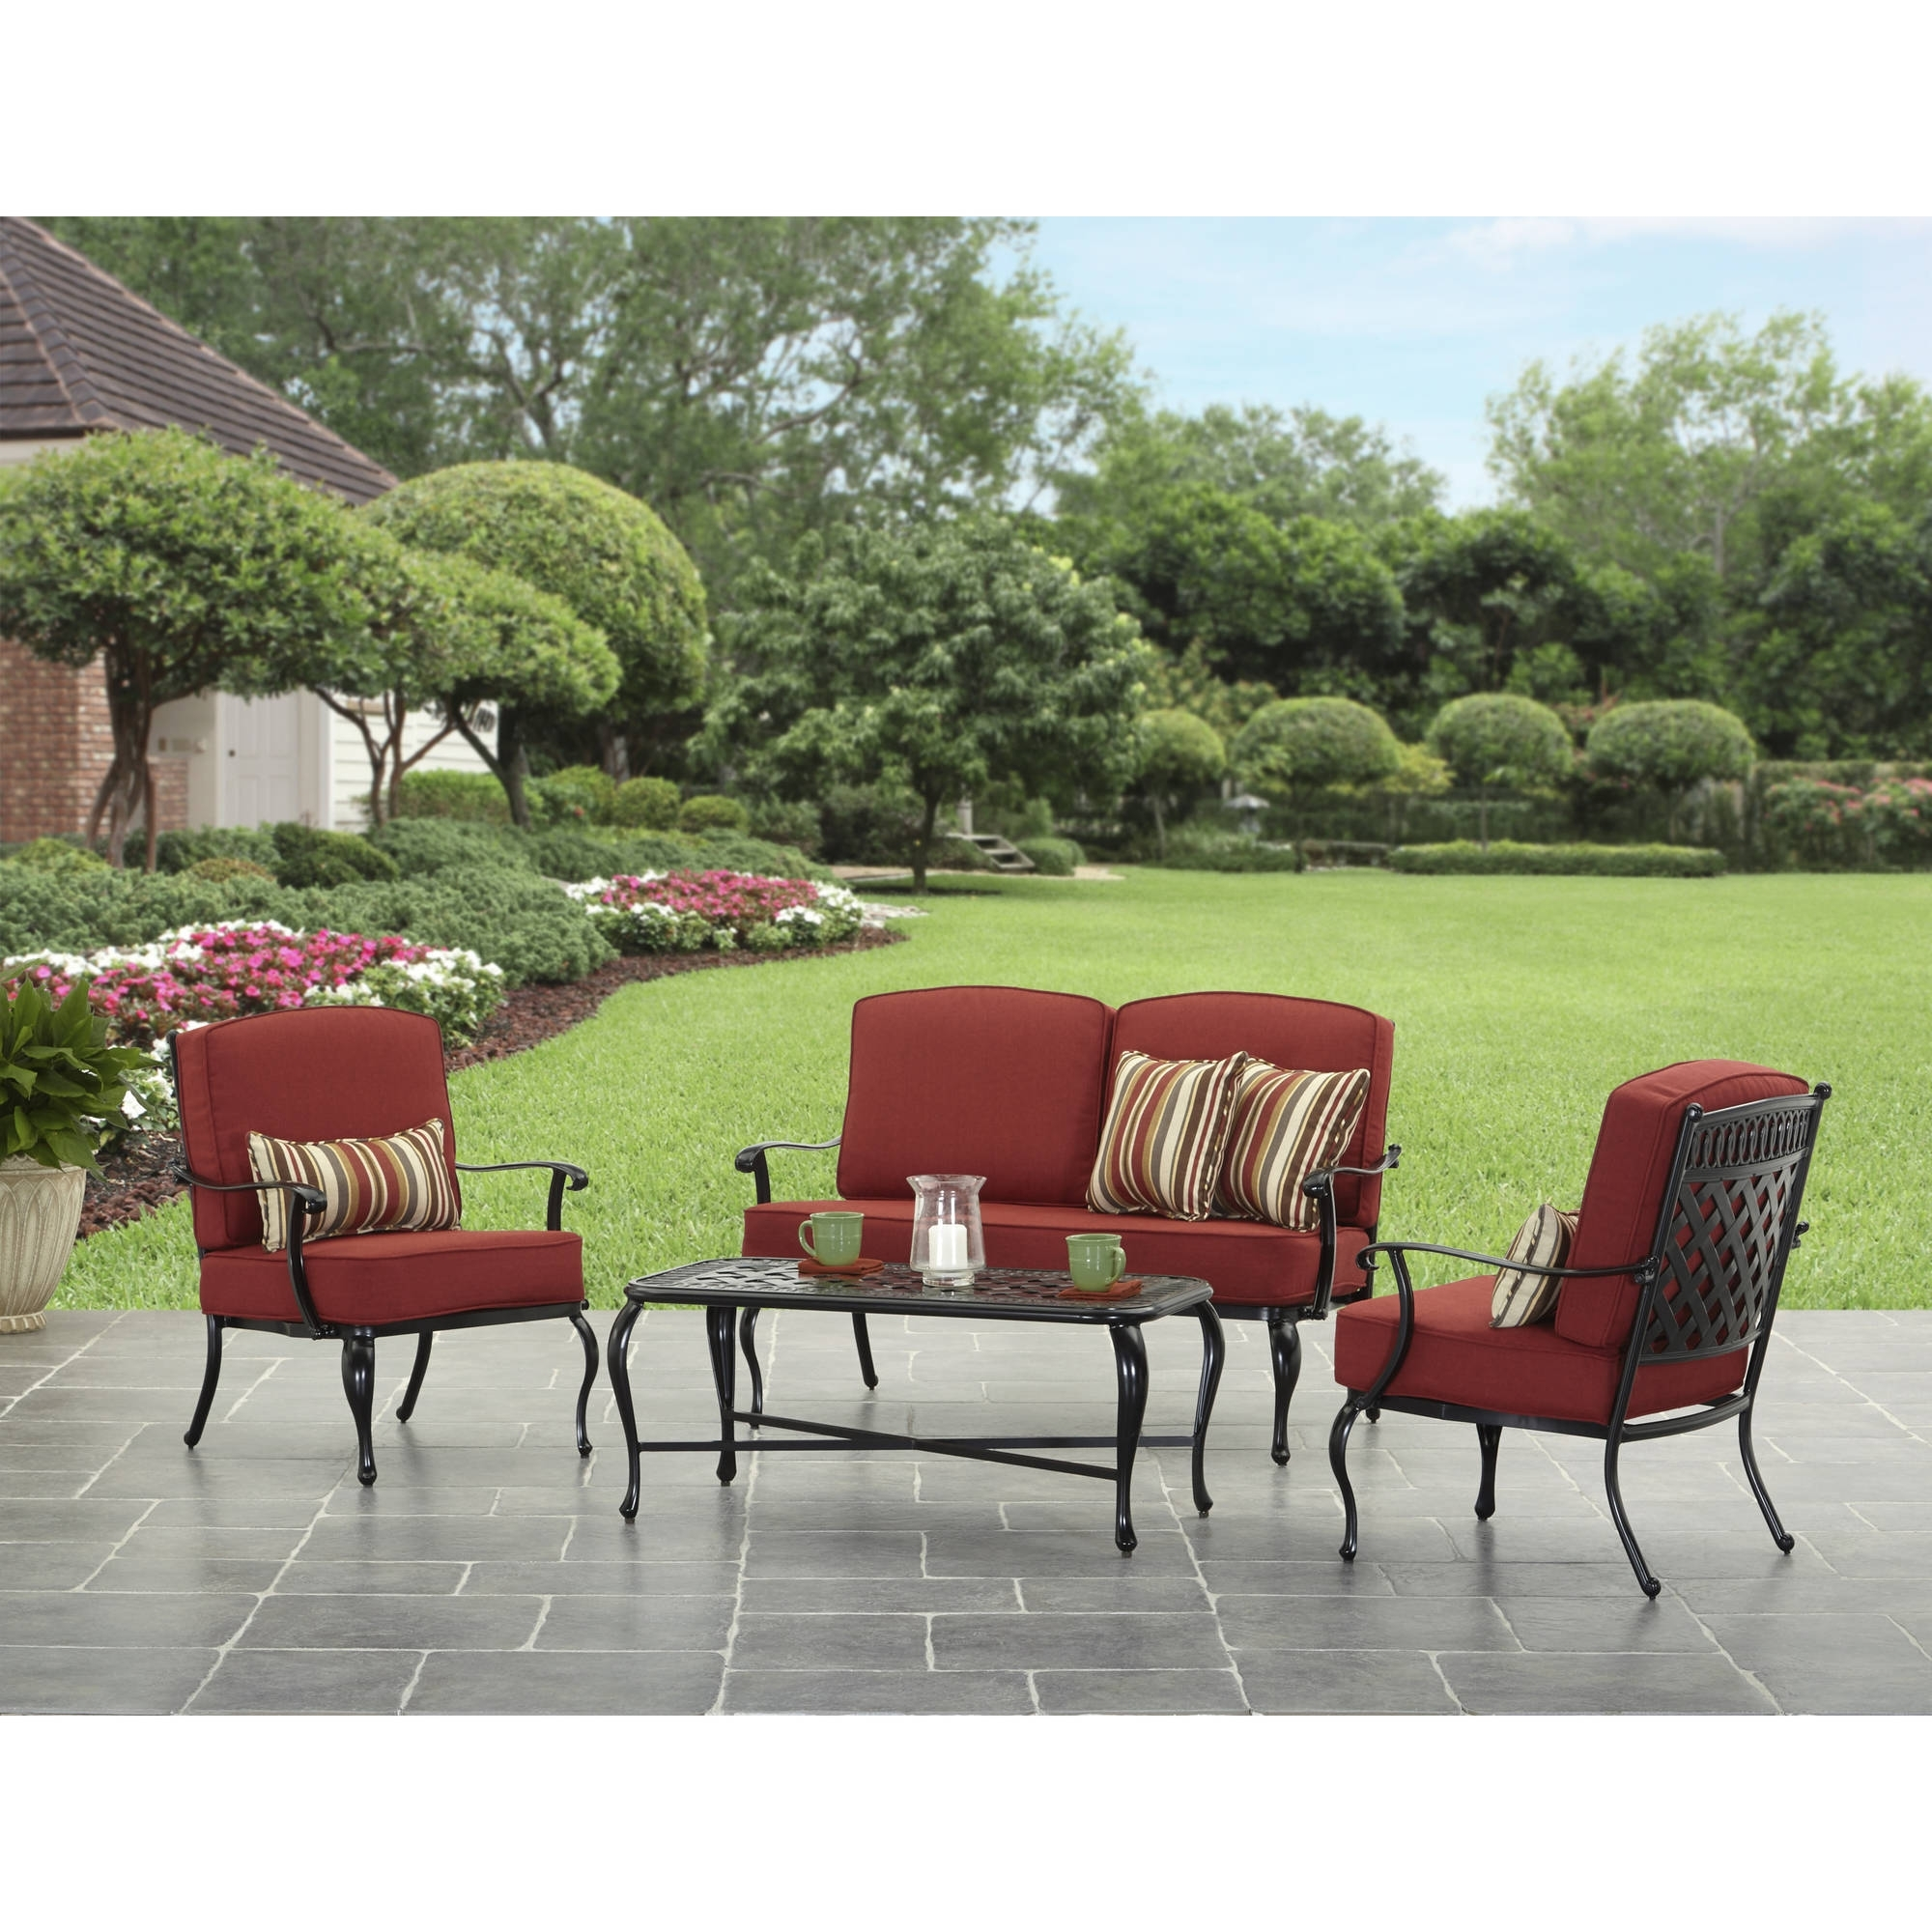 Better Homes And Garden Dawn Hill 4 Piece Outdoor Conversation Set With Regard To Newest Dot Patio Conversation Sets (View 7 of 20)